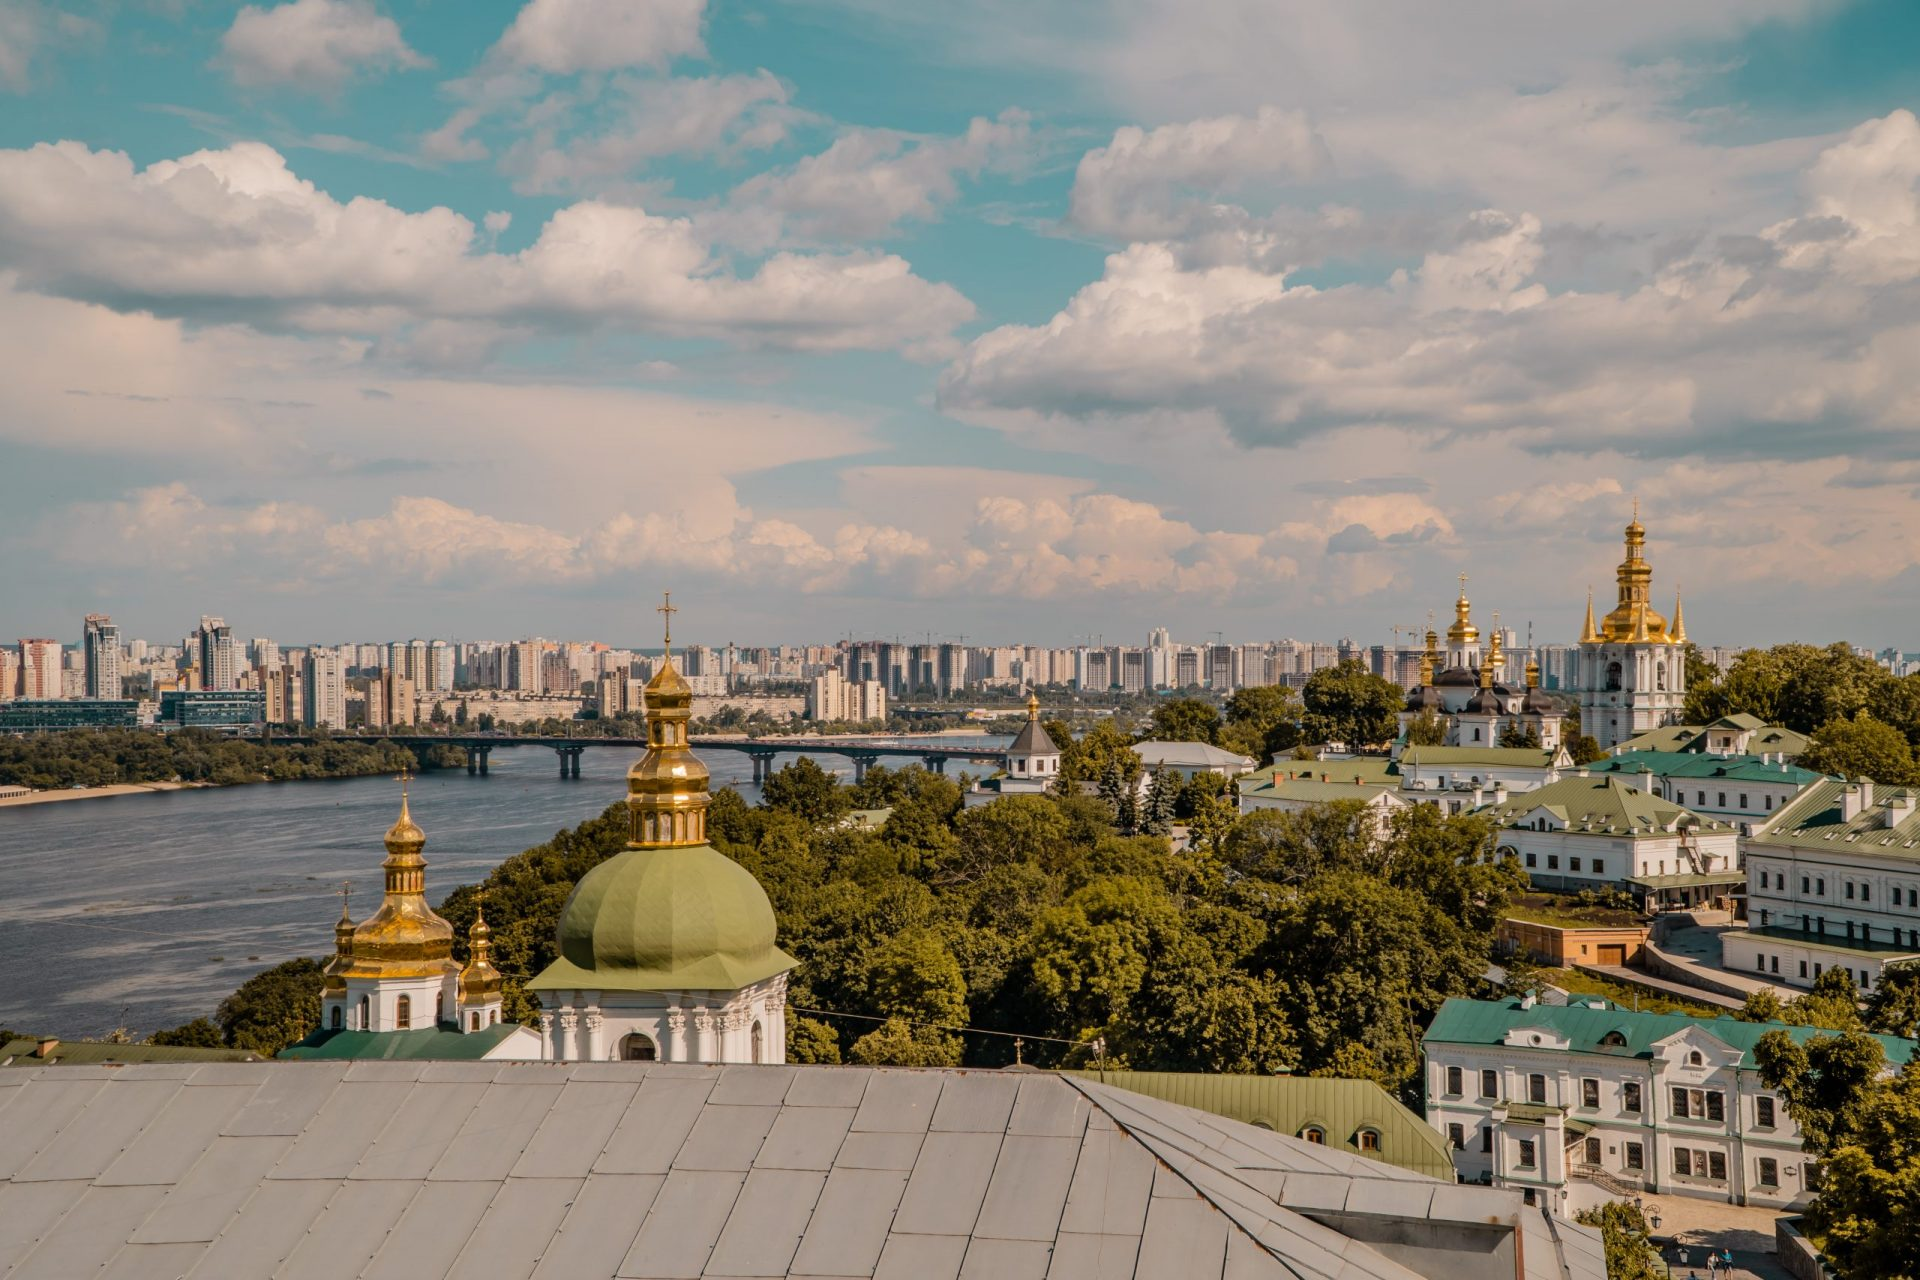 Things to do in Kyiv - panoramic sunset view of gold-domed churches, Dnipro river, and communist housing blocks seen from Pechersk Lavra (Caves)